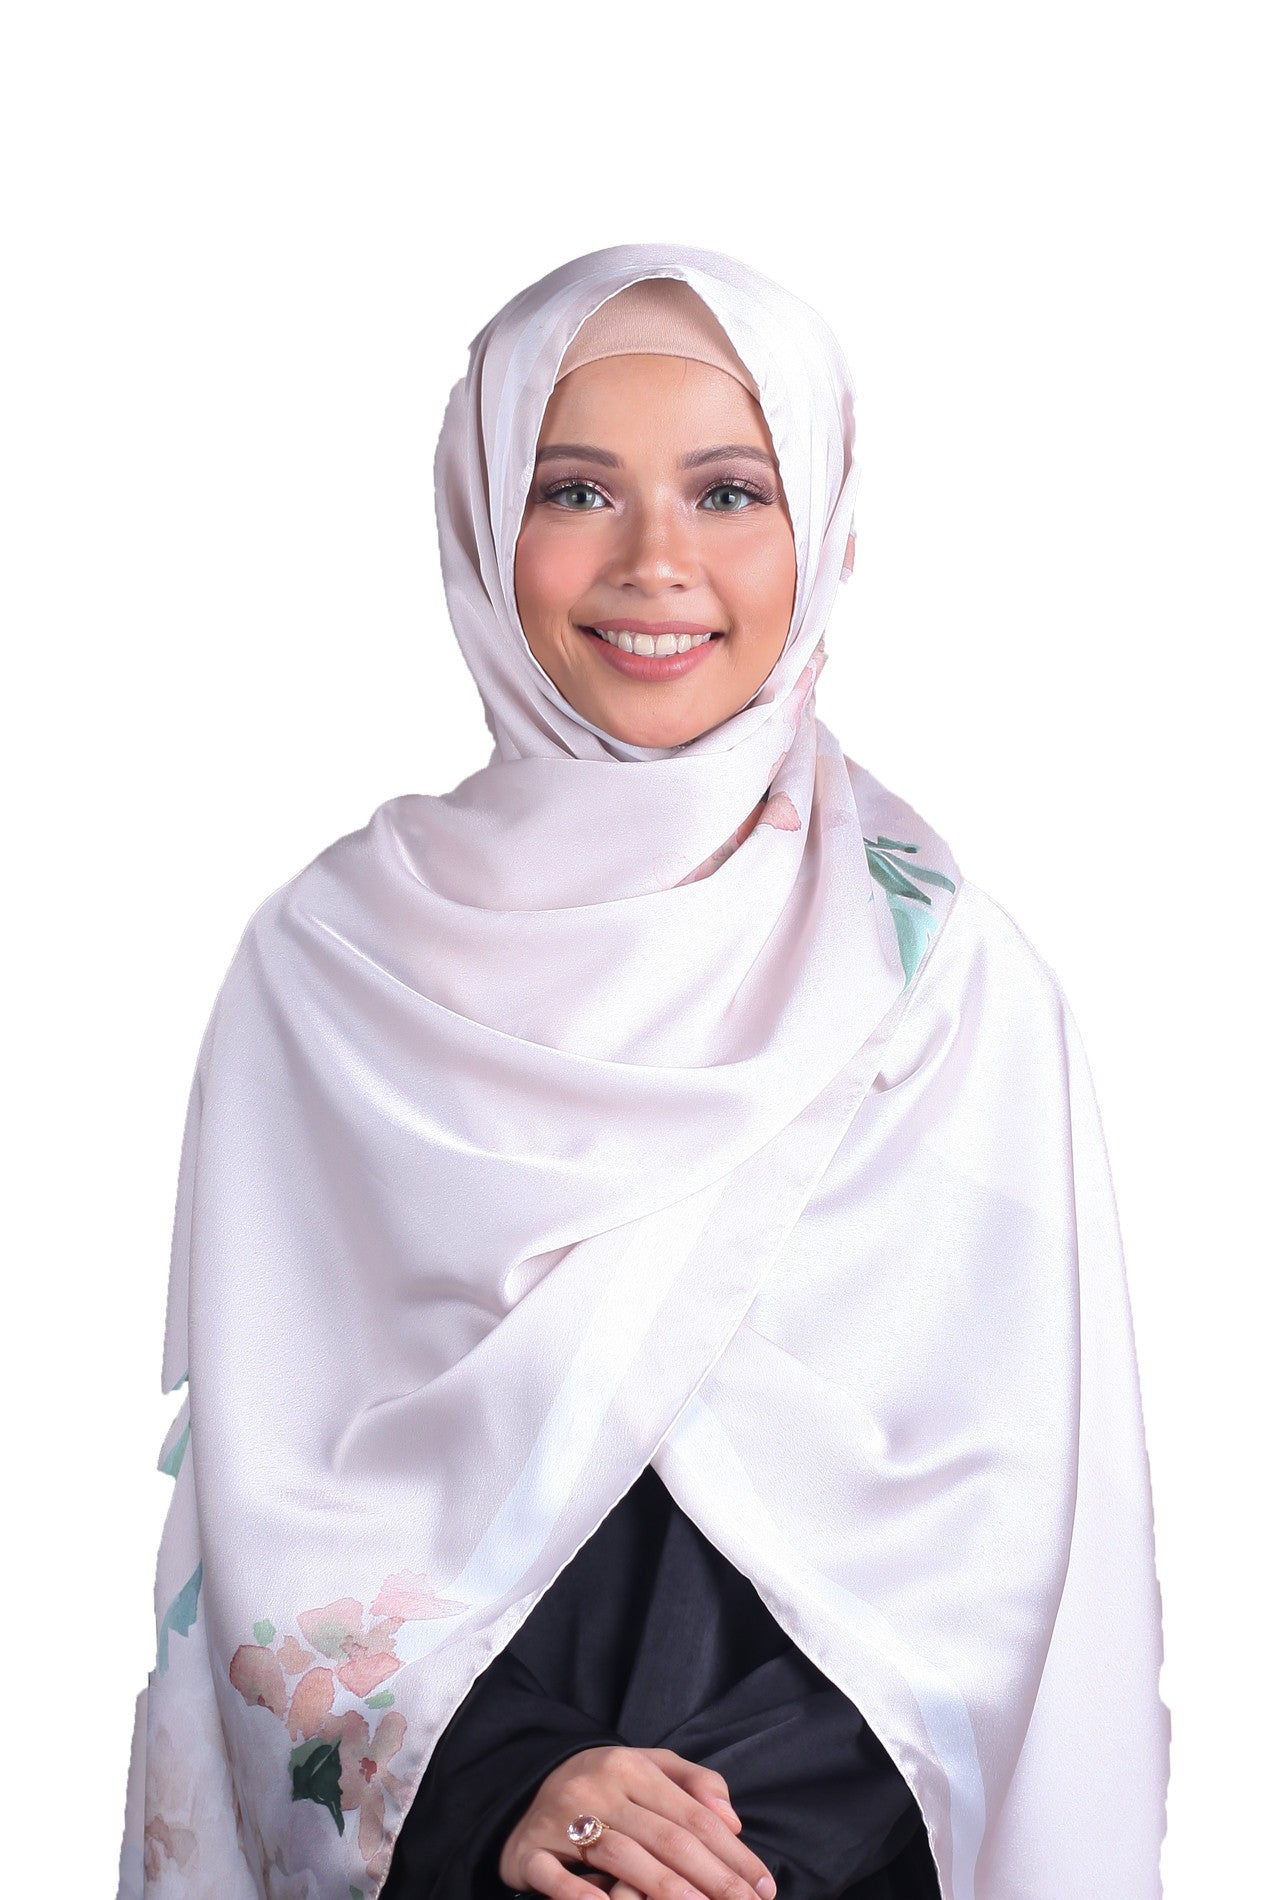 Bestsellers : Watercolor 1.0 - Light Grey